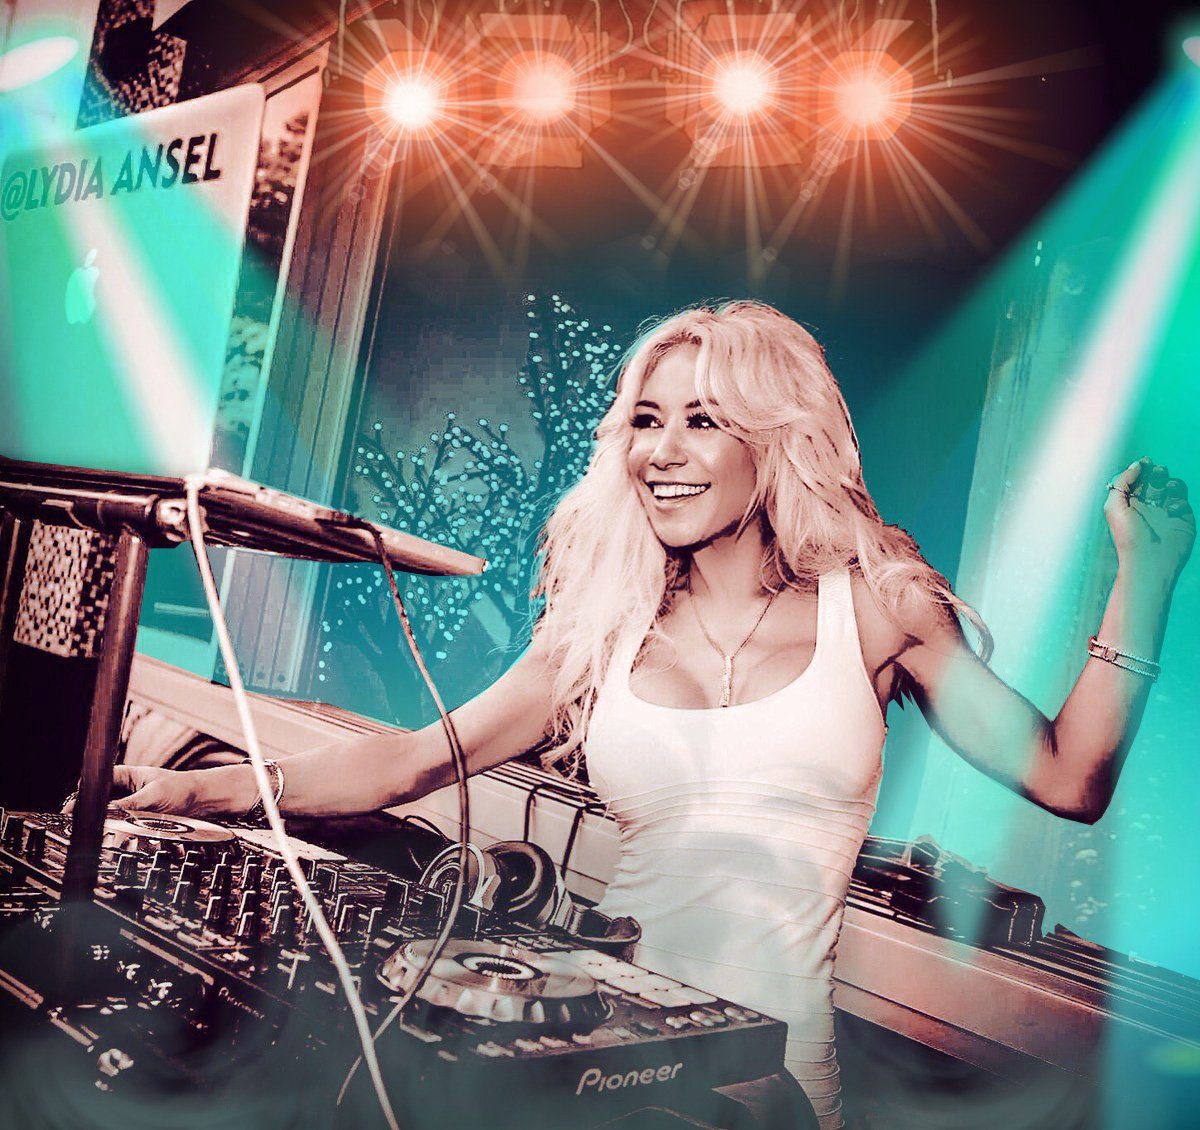 All you need is love. But a little flowers or chocolate now and then doesn't hurt @LydiaAnsel  #radio #djlife #deephouse #techno #tonight #femaledj isha #pioneerdj #turntablism True love comes quietly without banners or flashing lights. If u hear bells, get your ears checked<br>http://pic.twitter.com/YUg4hCL2nz